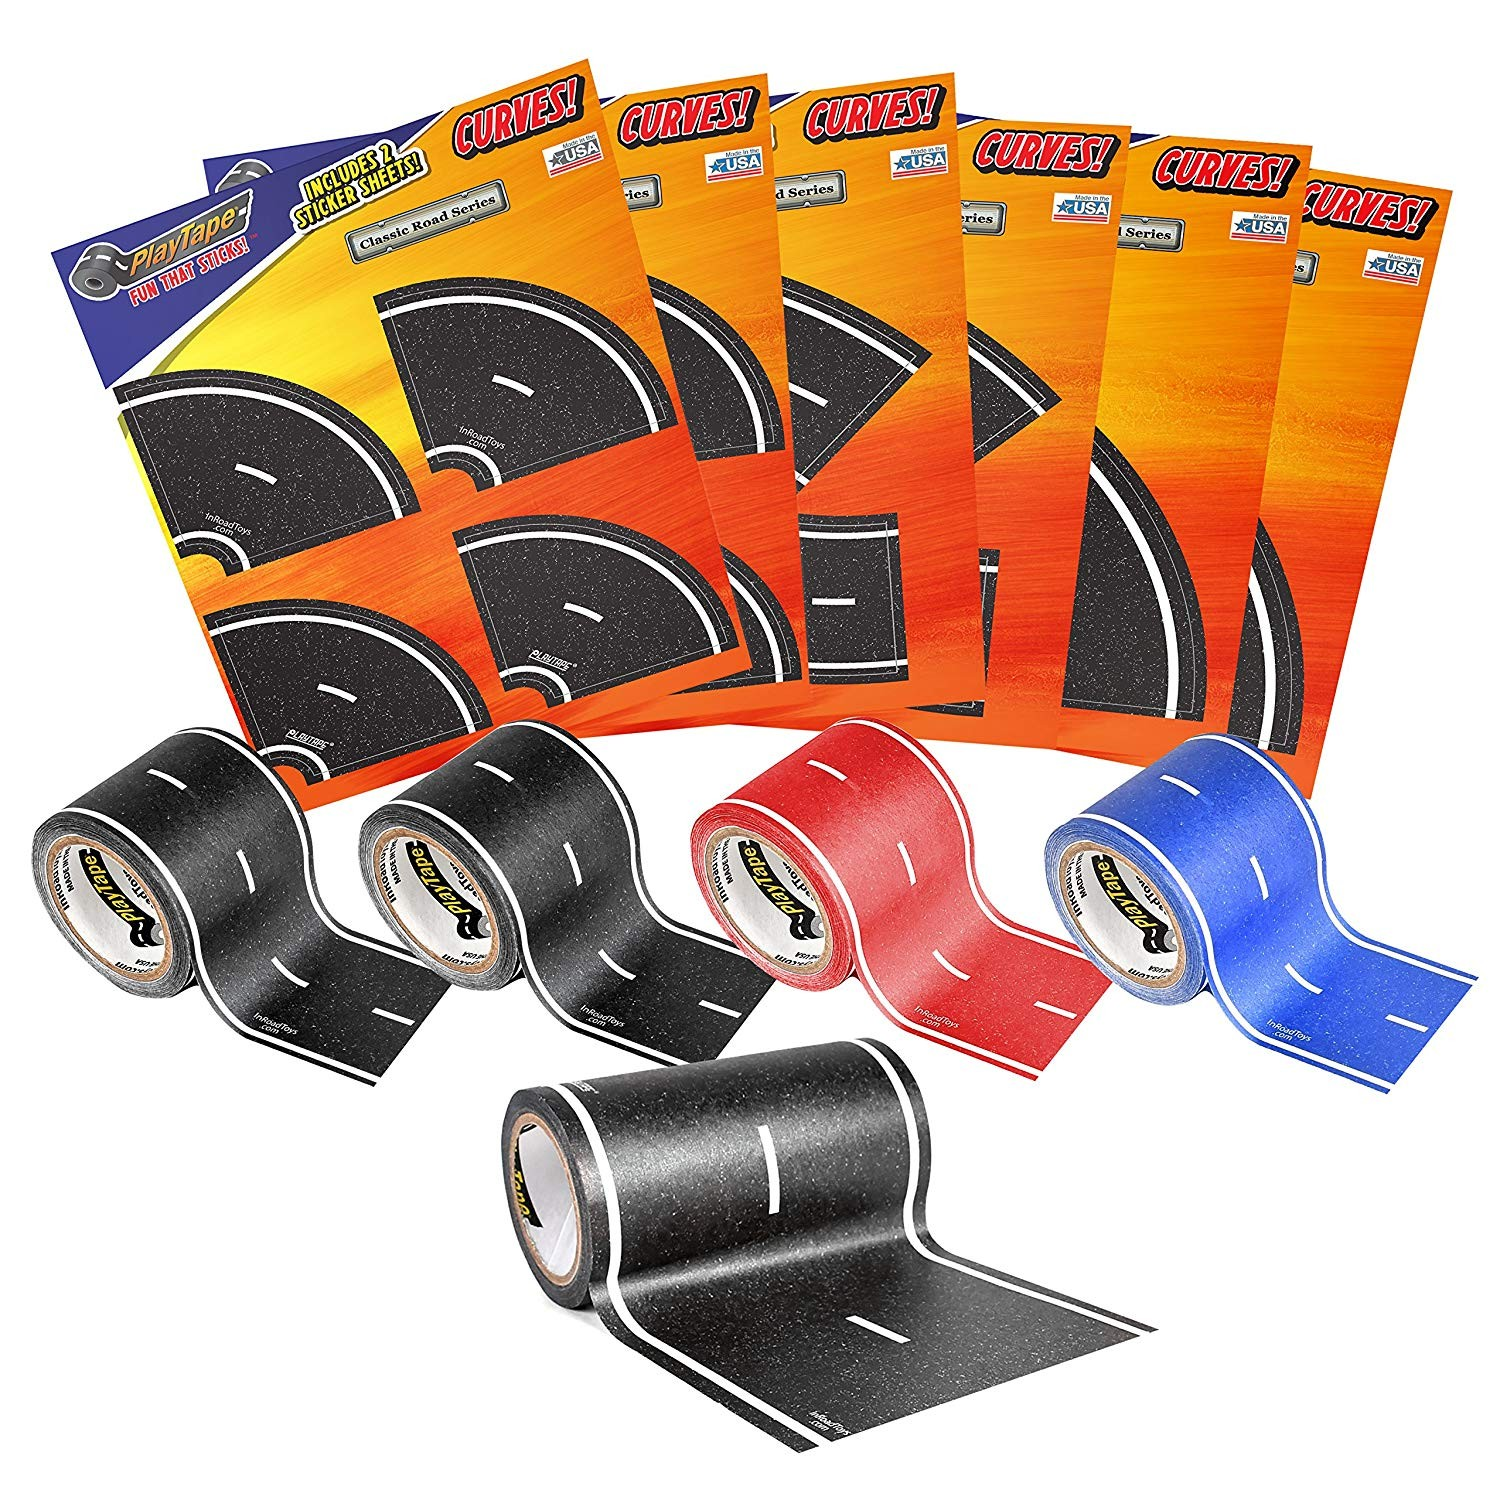 PlayTape Road Rally Road and Curve Assortment for 5-7 Kids - Road Car Tape Great for Kids, Sticker Roll for Cars and Train Sets, Stick to Floors and Walls, Quick Cleanup, Children Toys Birthday Gift